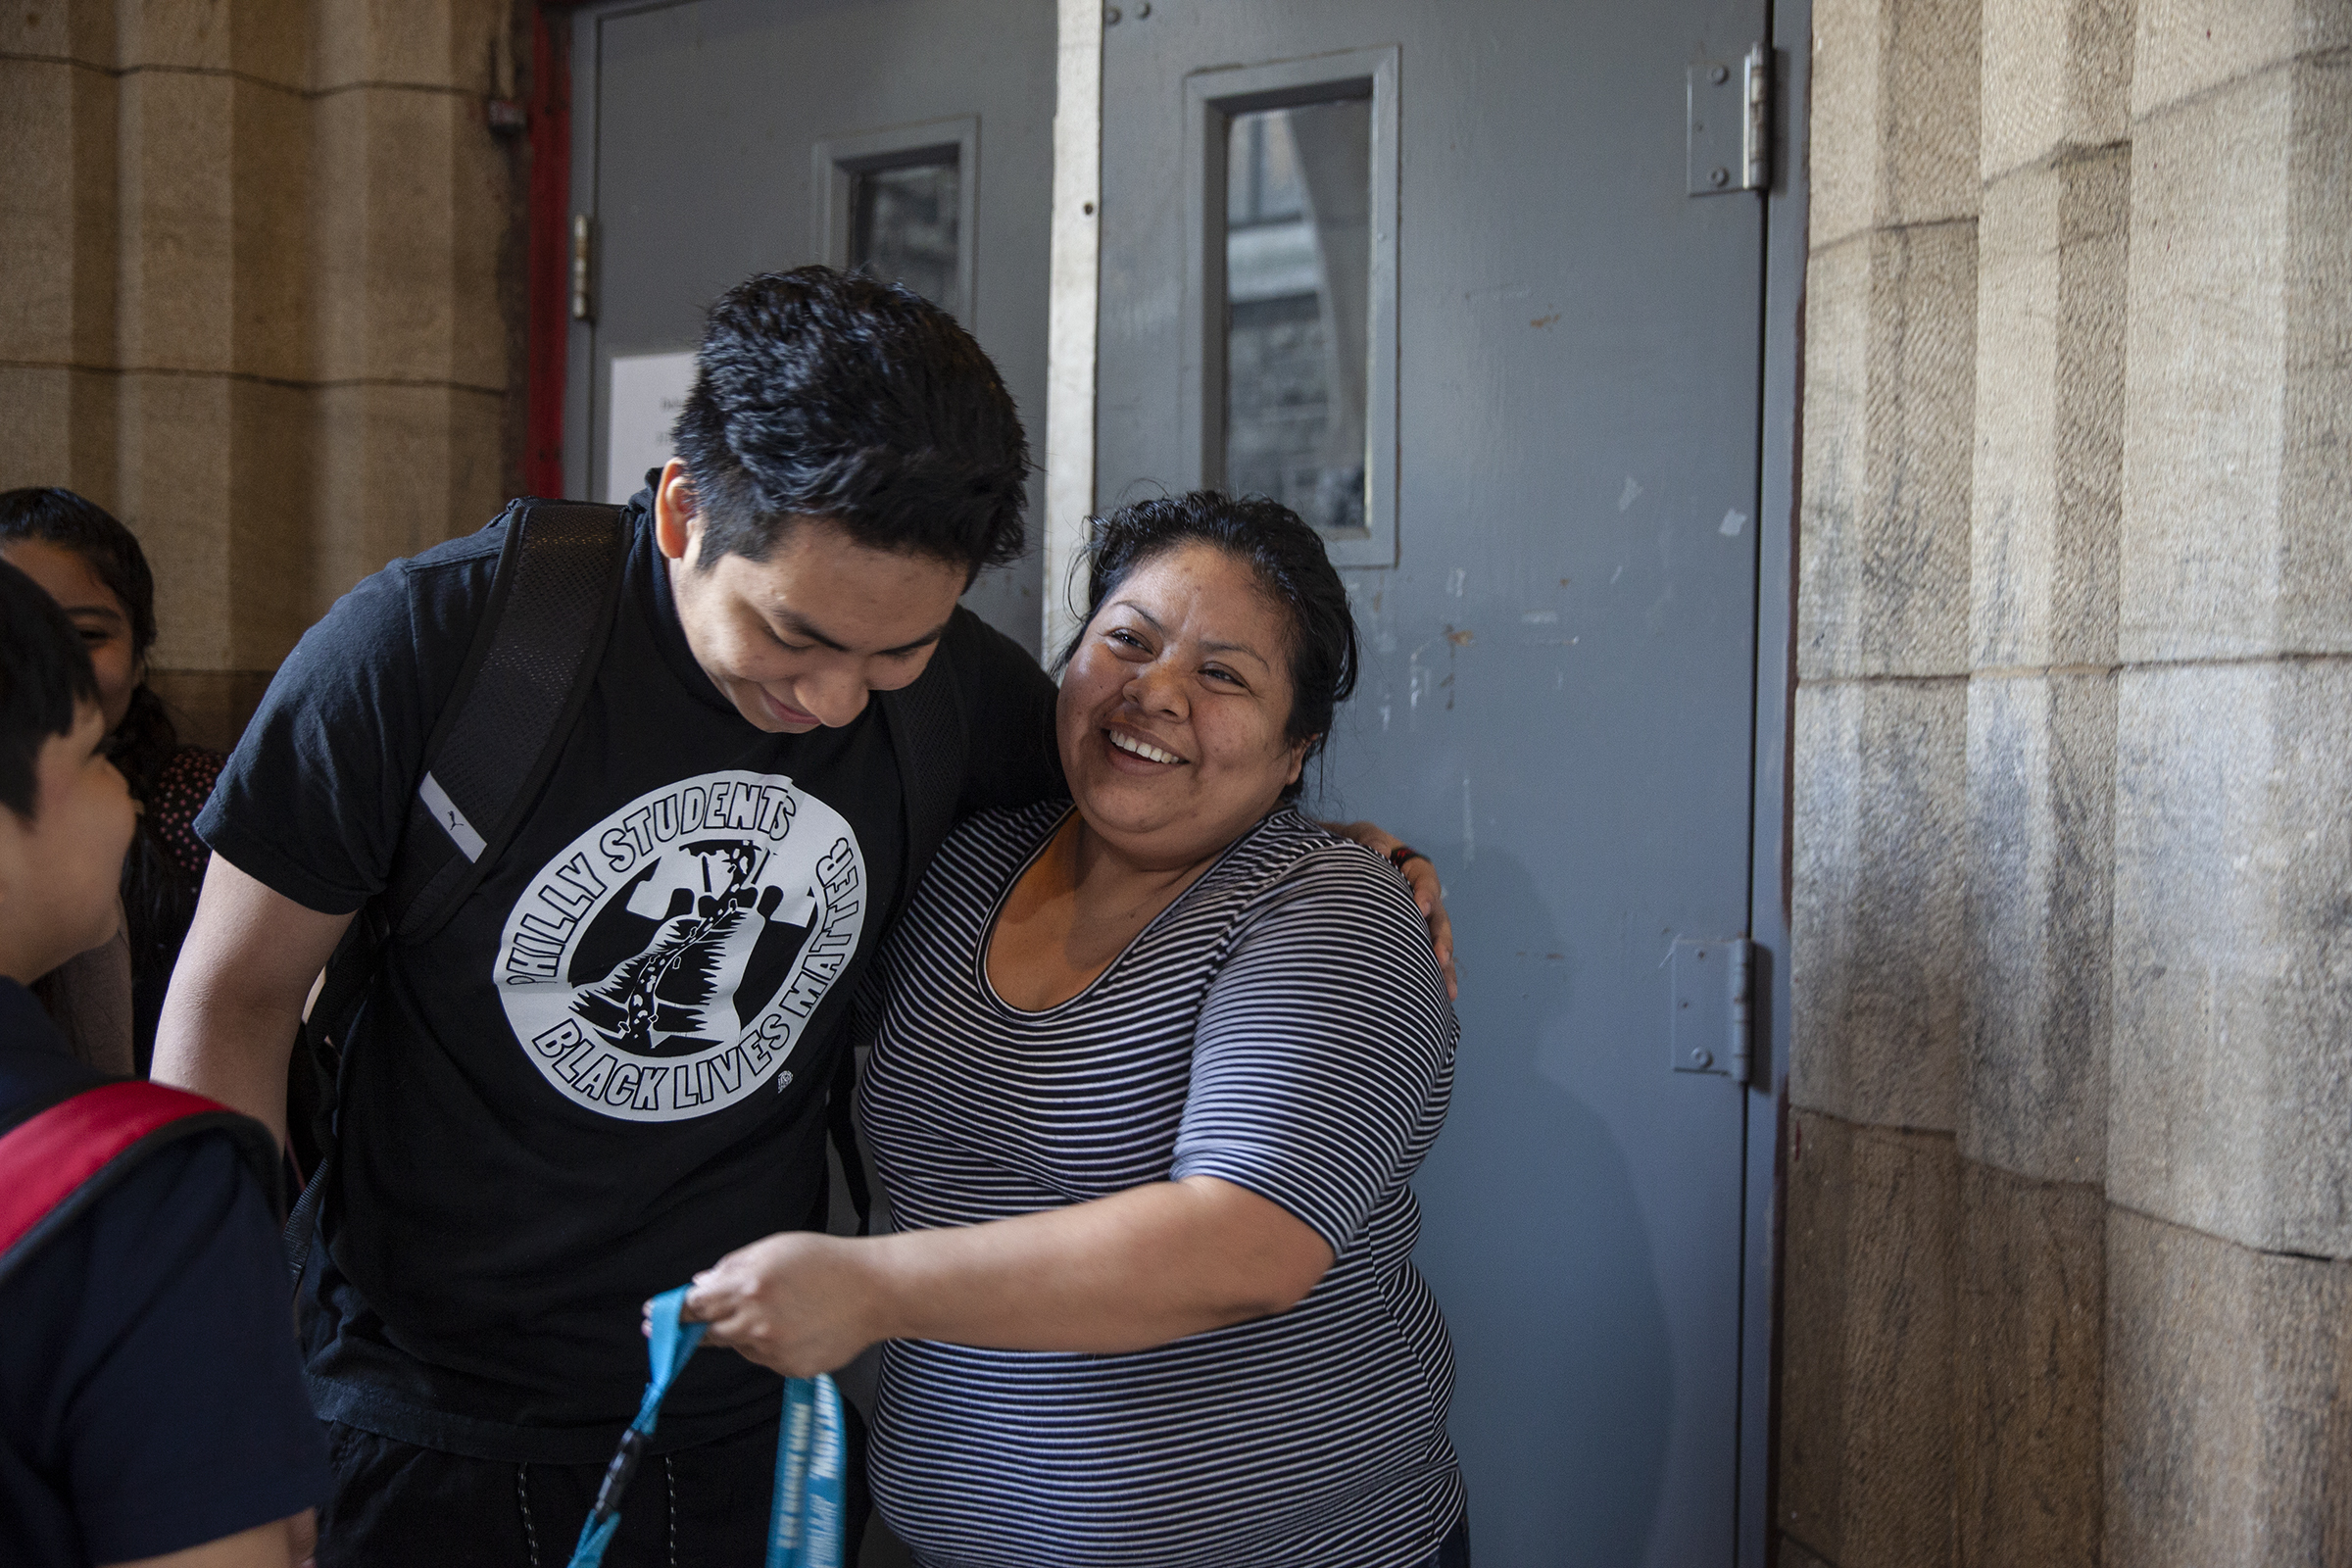 Carmela Hernandez hugs her son, Fidel, inside the gates of the Church of the Advocate in North Philadelphia before they leave sanctuary for the first day of school.